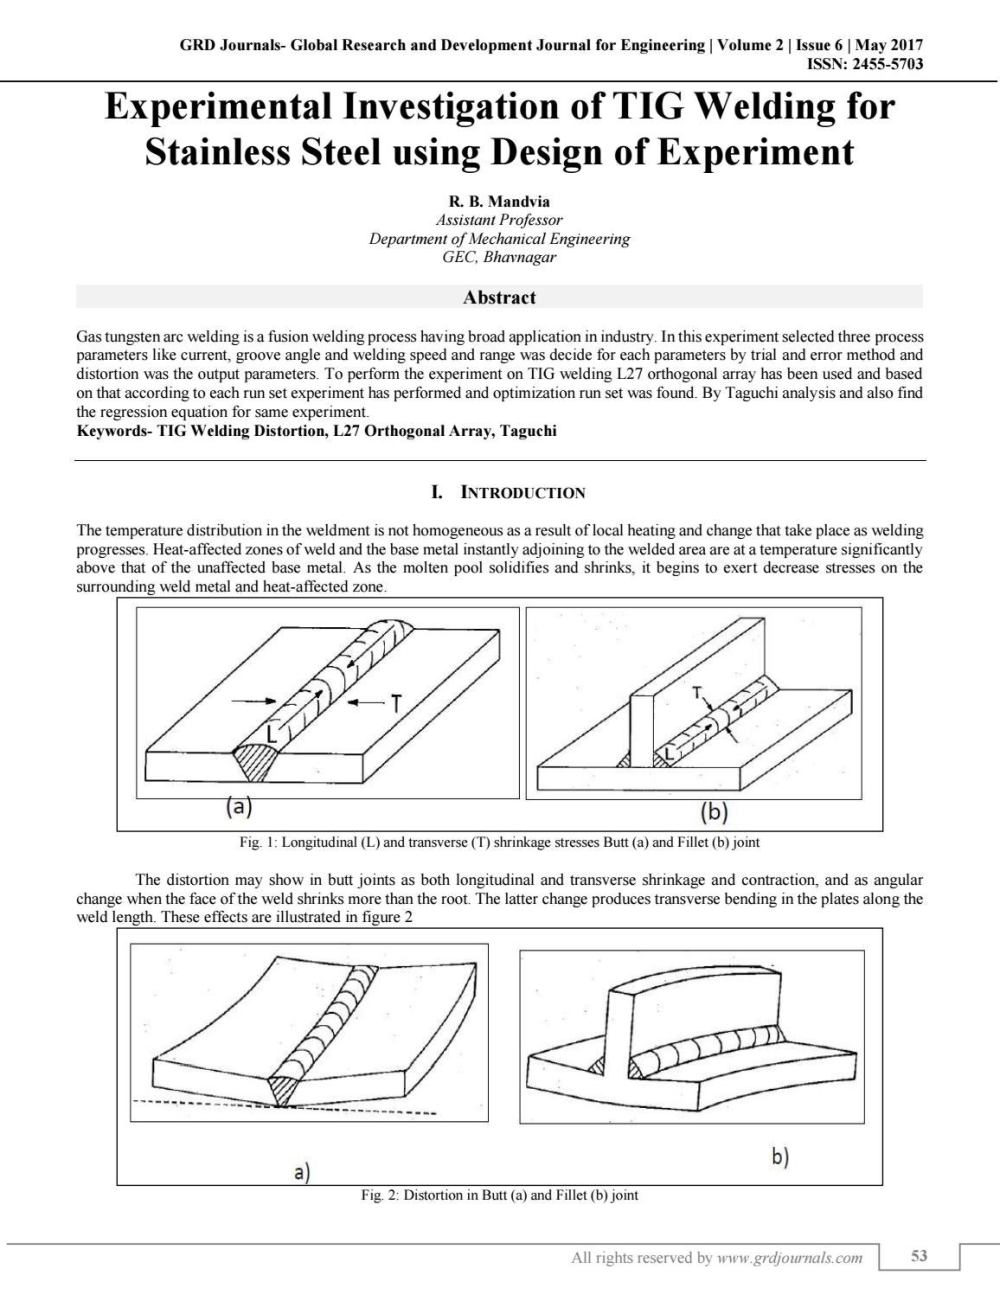 medium resolution of experimental investigation of tig welding for stainless steel using design of experiment by grd journals issuu